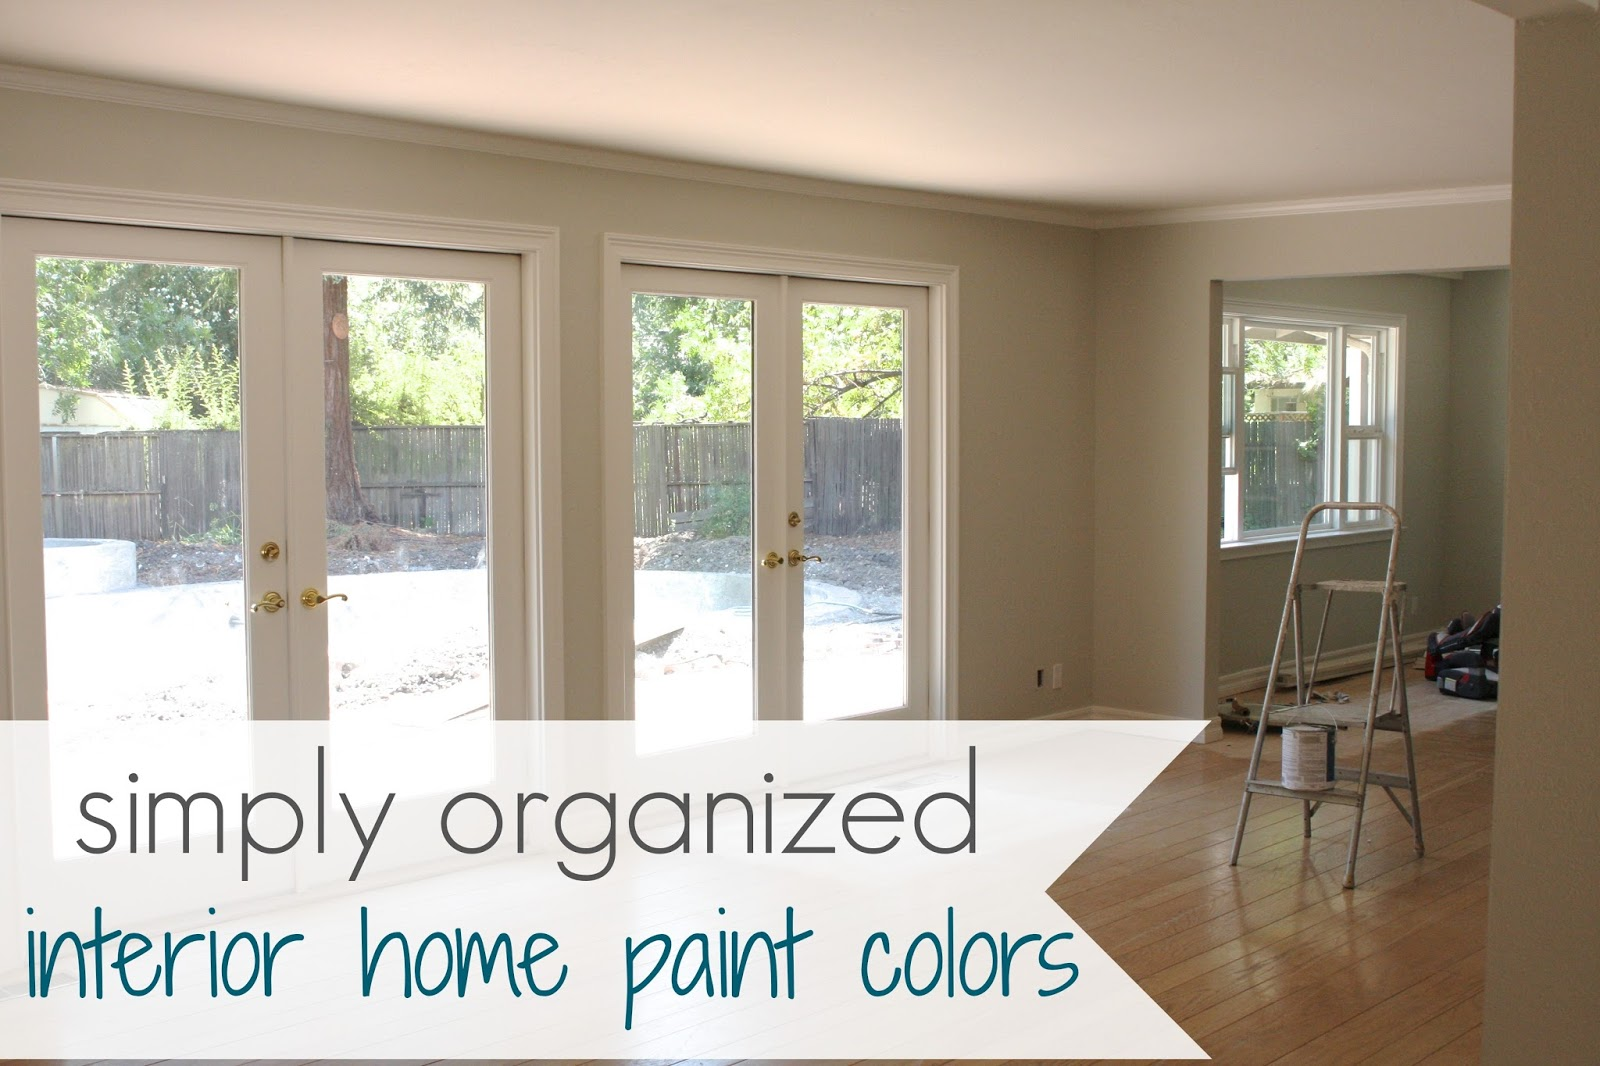 My home interior paint color palate simply organized Paint colors interior